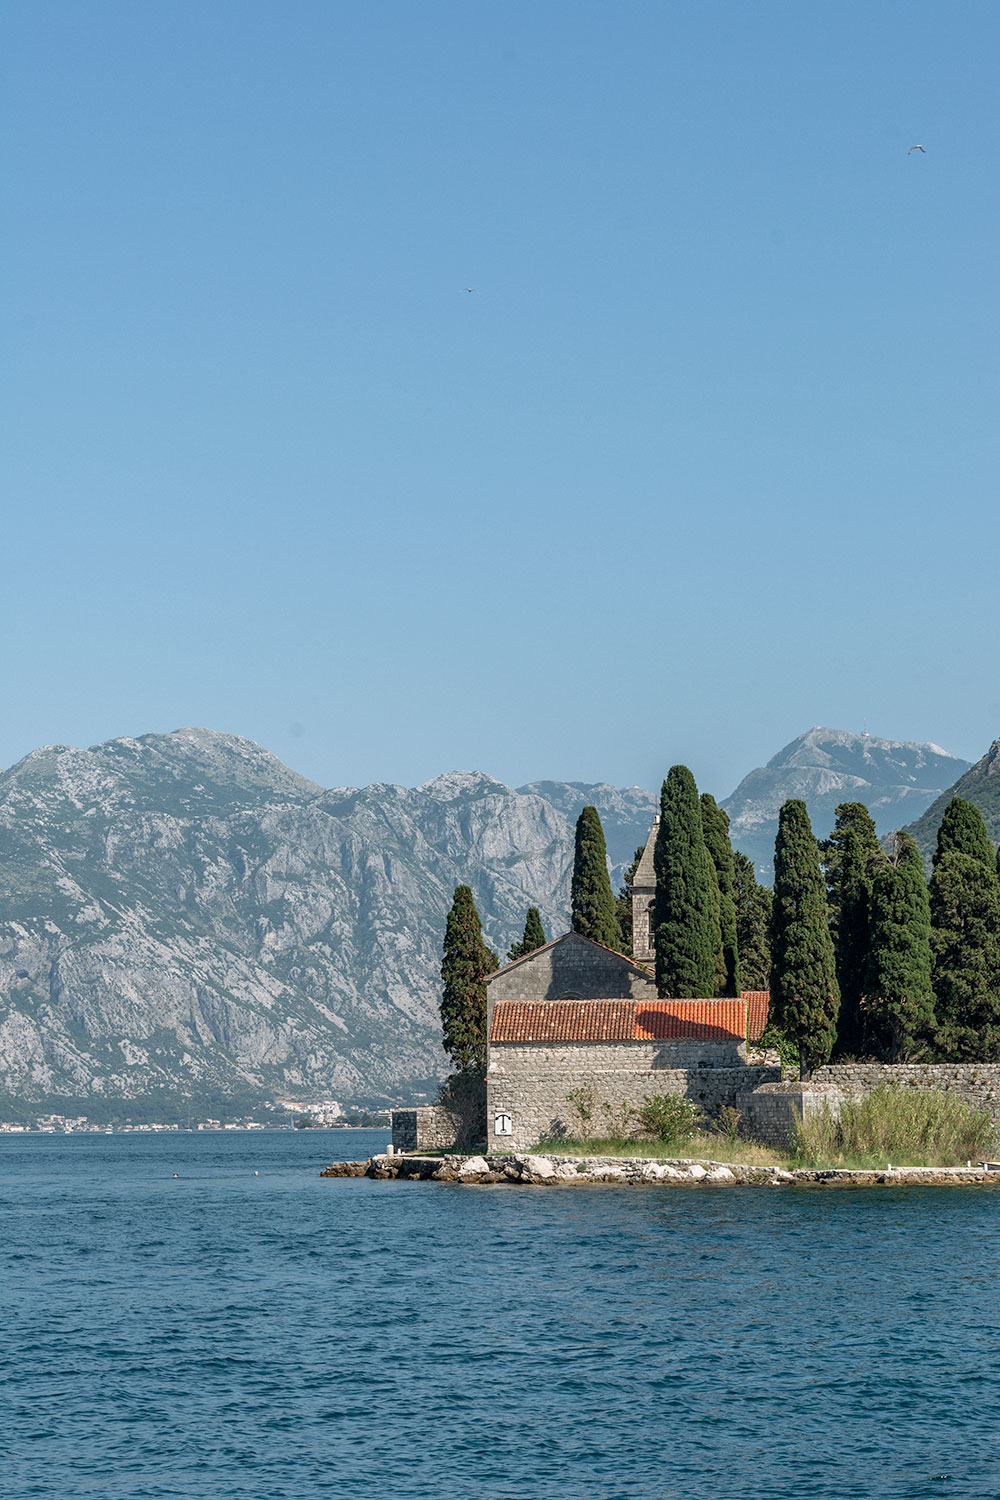 Upclose view to the St. George Island from Our Lady of the Rocks in Montenegro